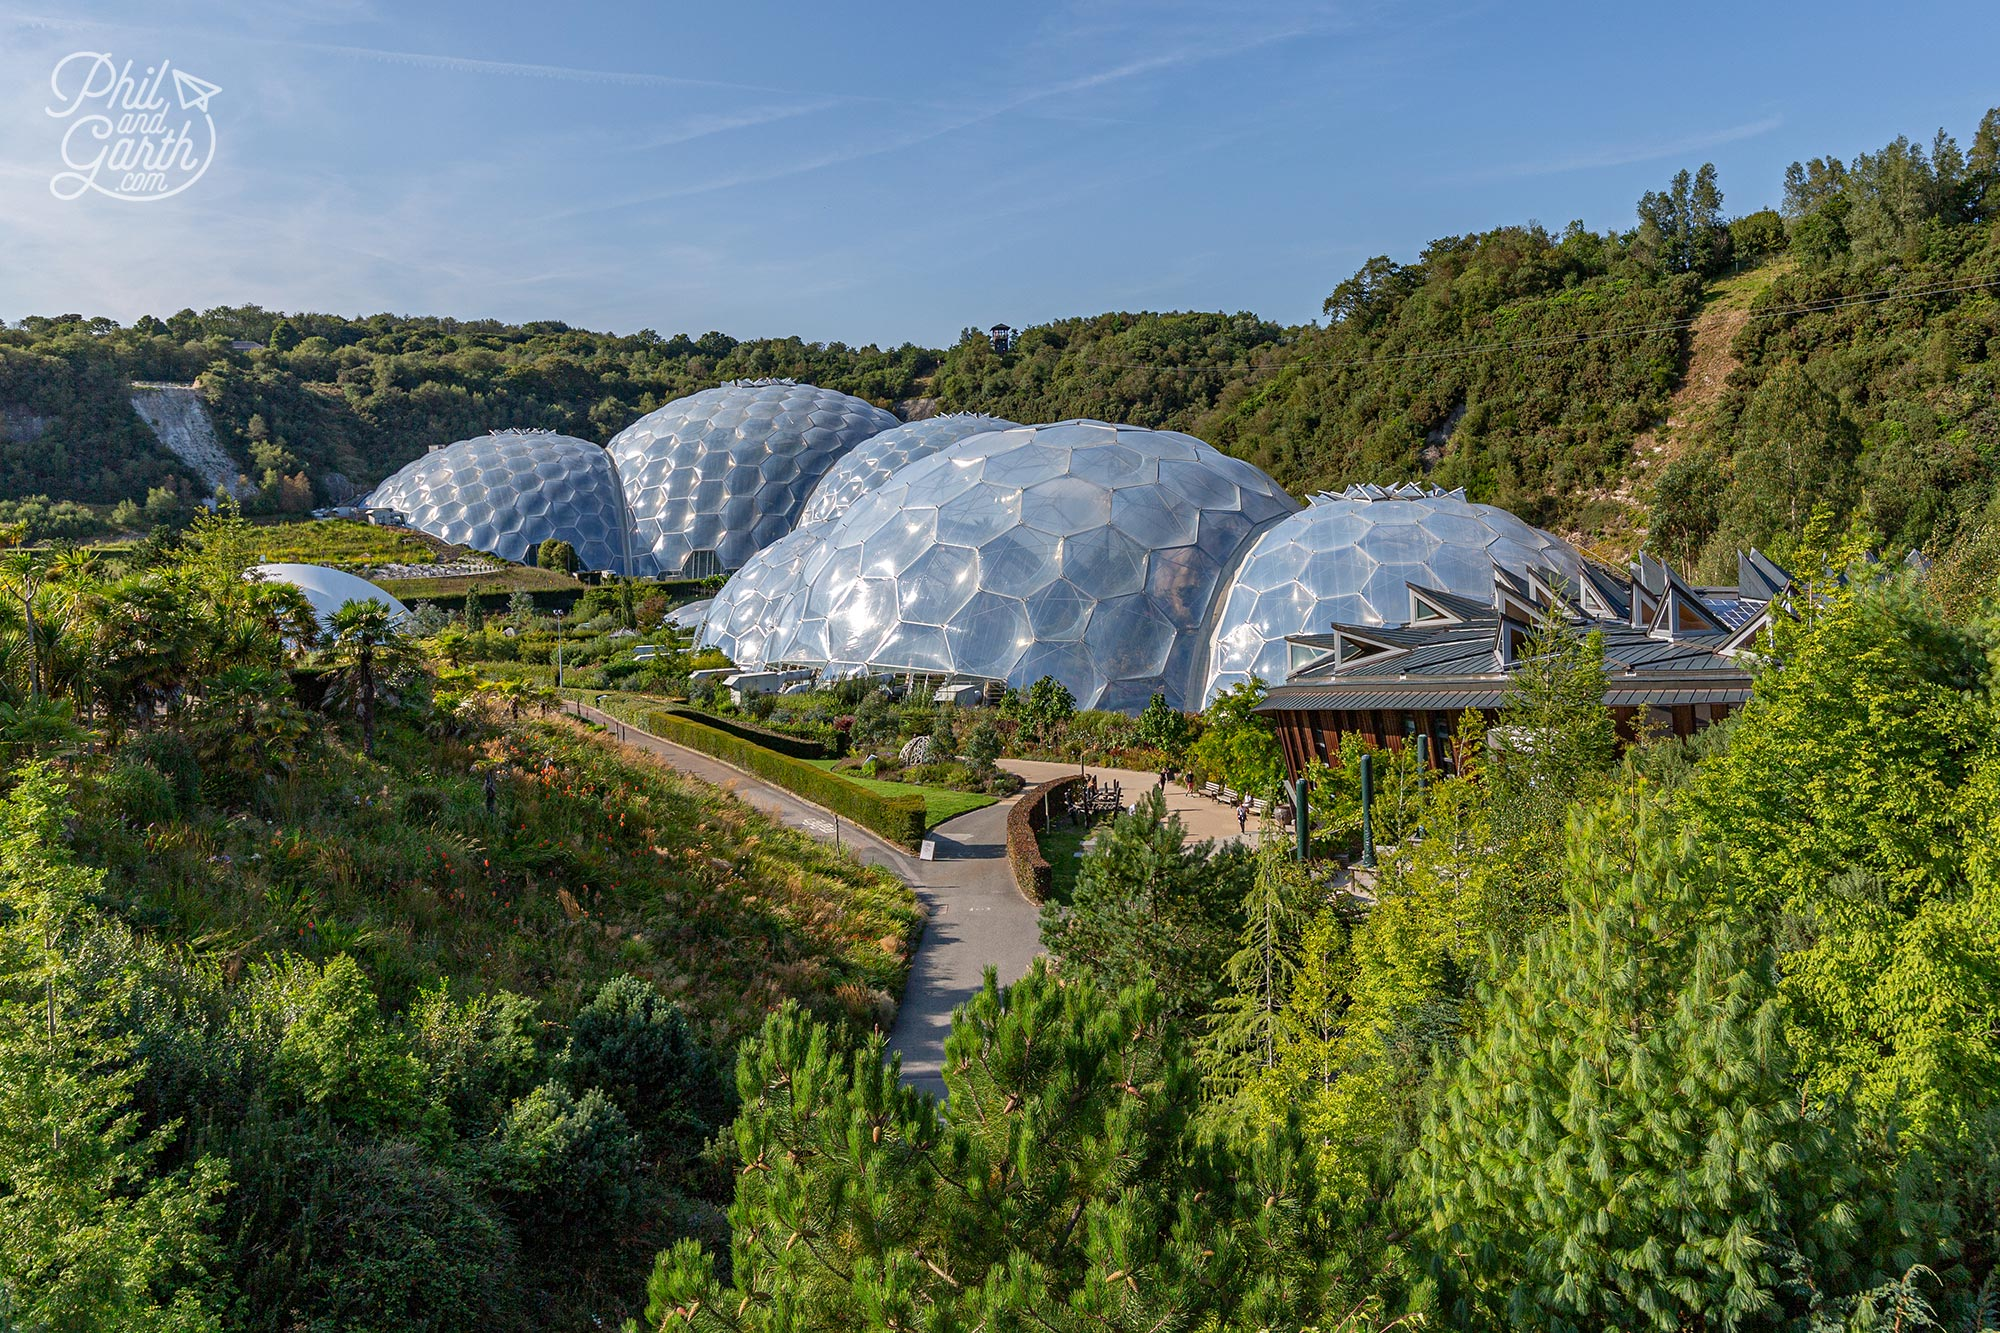 The Eden Project is like a Noah's ark of plants